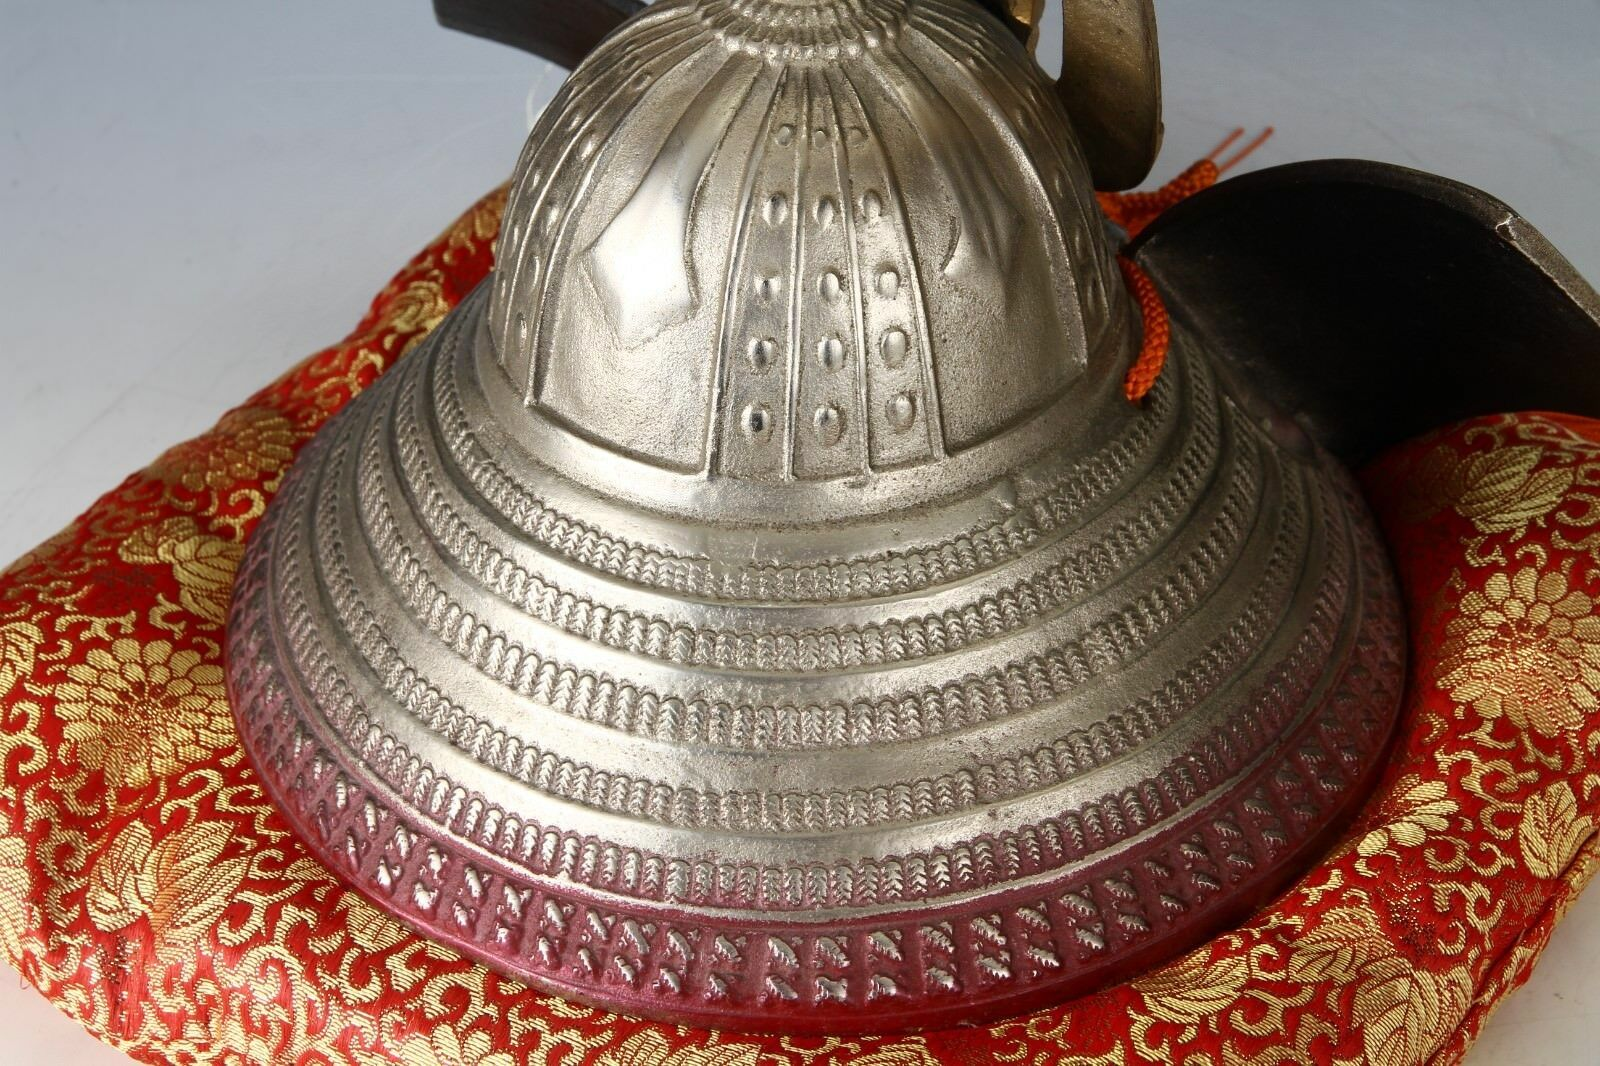 Beautiful Vintage Samurai Helmet -Made in Japan- Silver Color